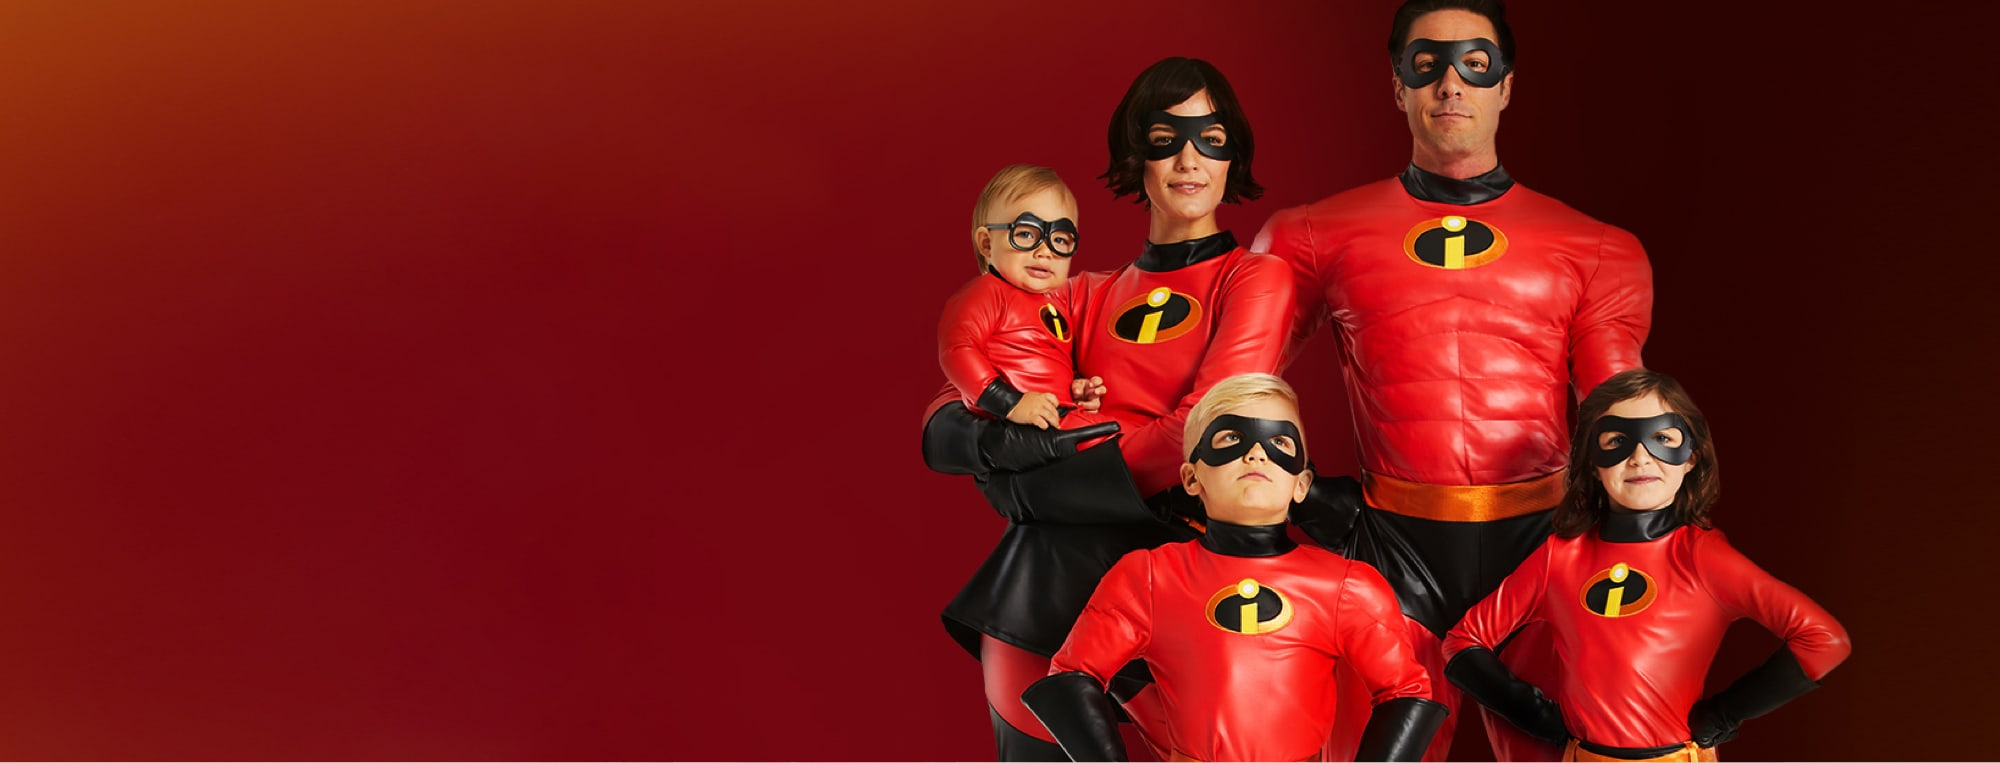 Disney Store l Incredibles 2